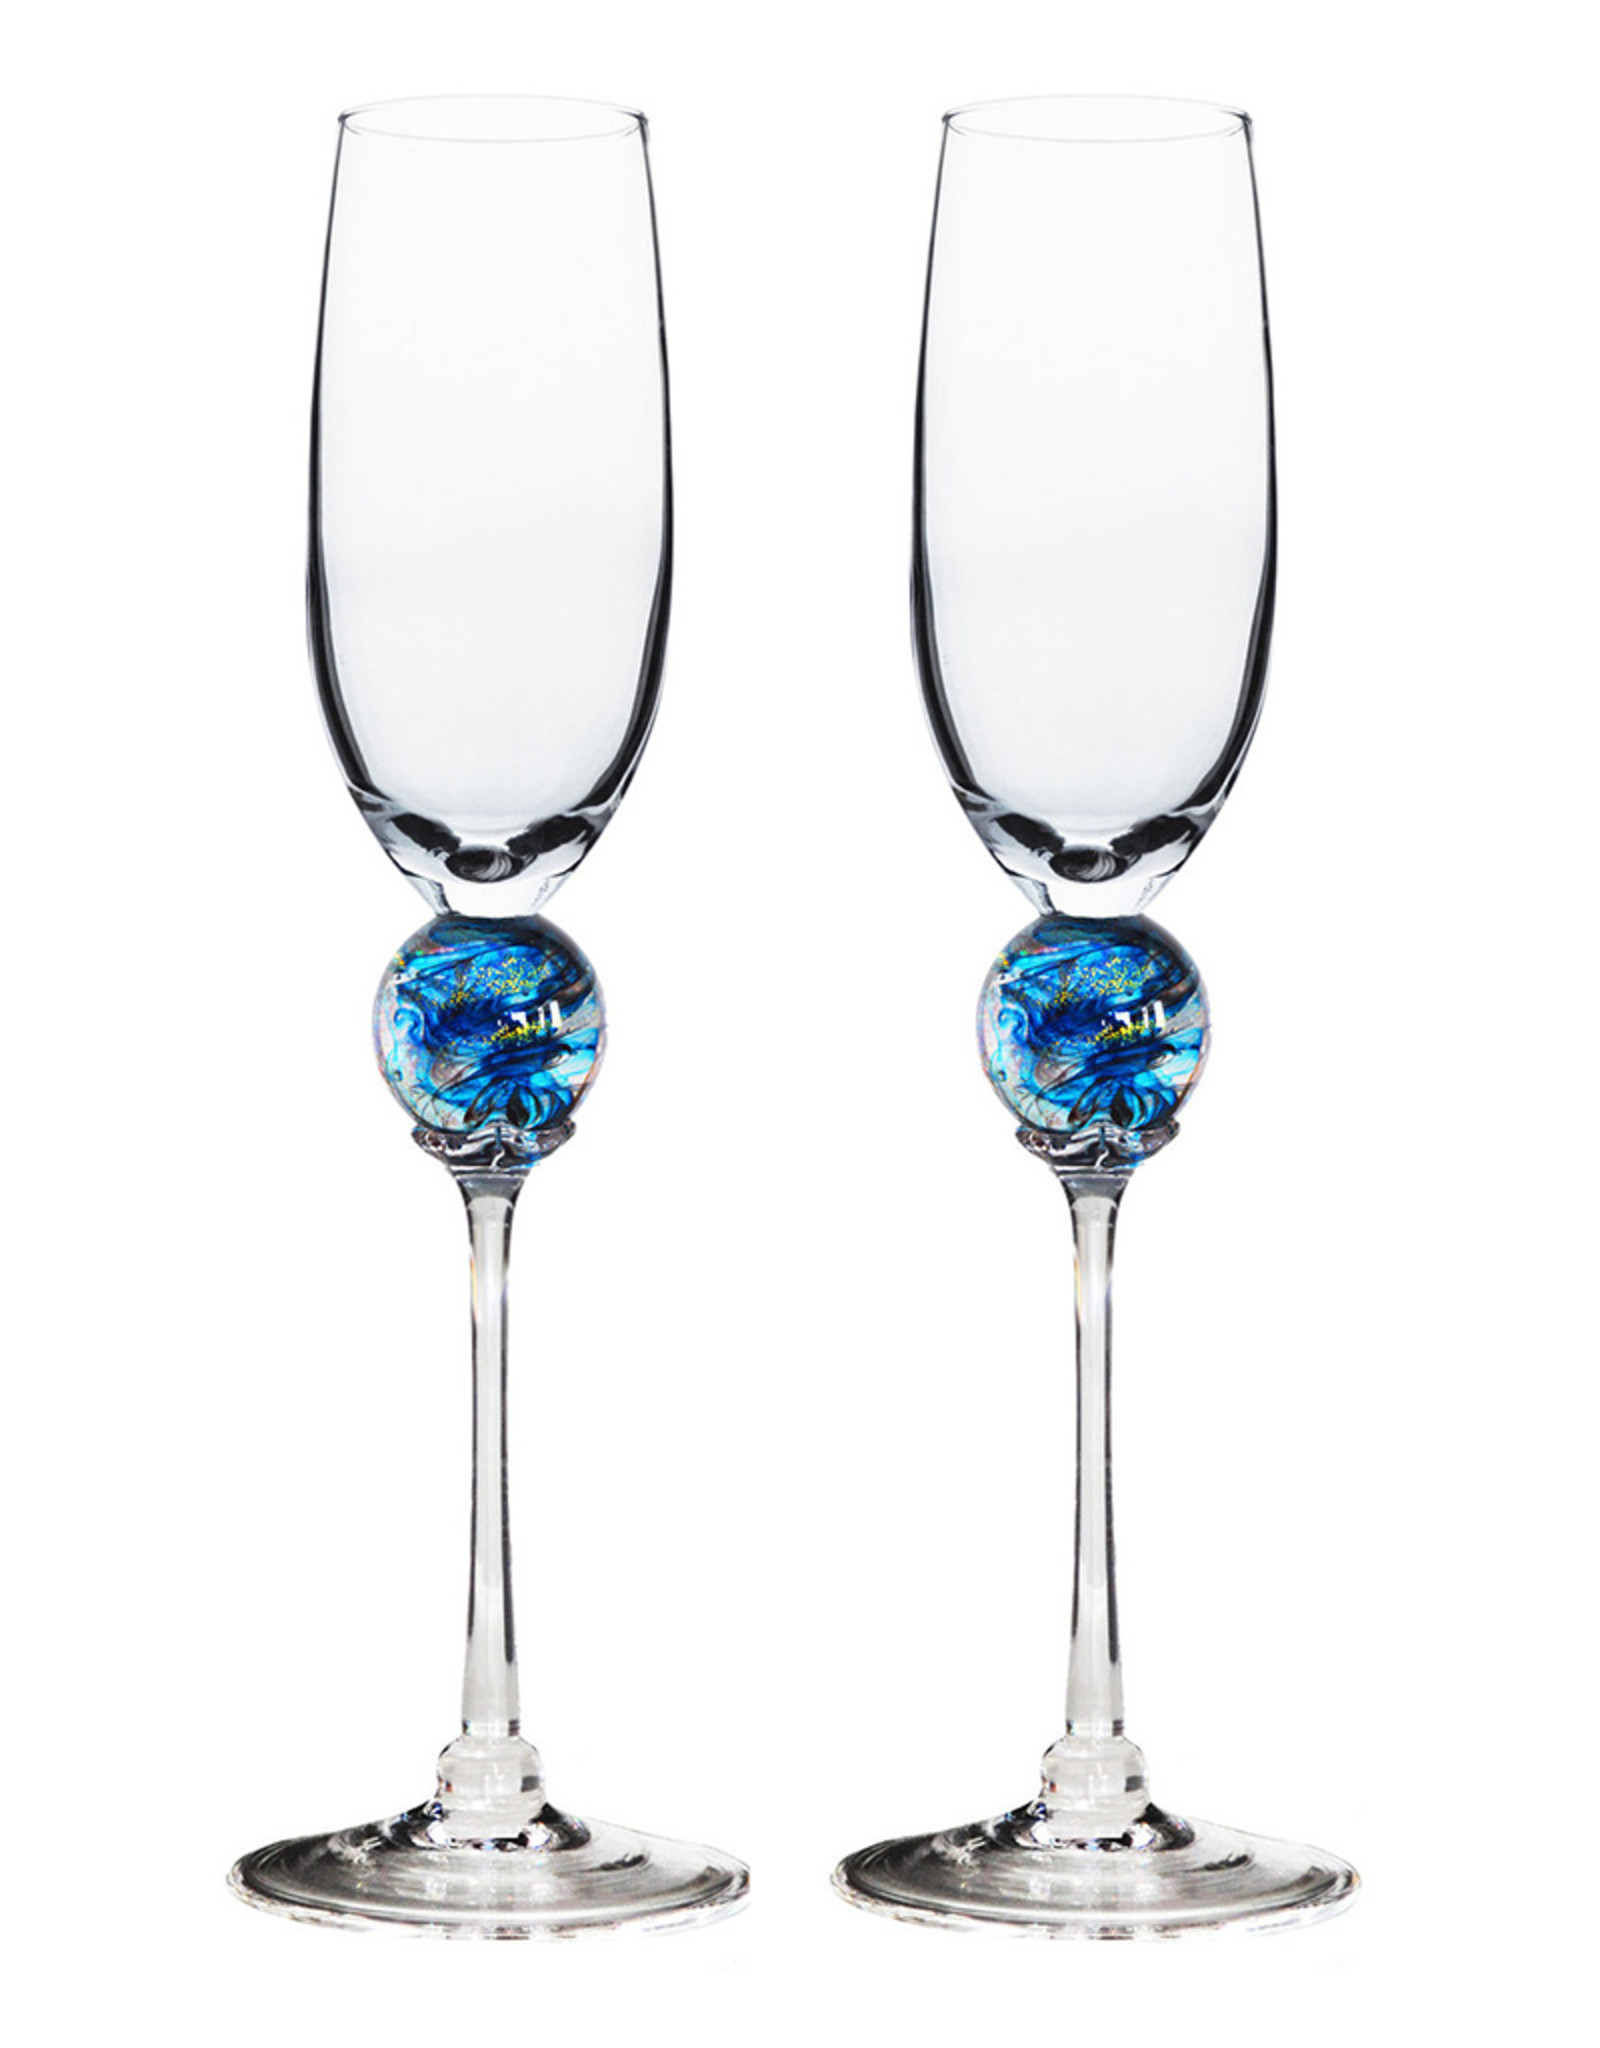 ROMEO GLASS TURQUOISE PLANET FLUTE GLASS